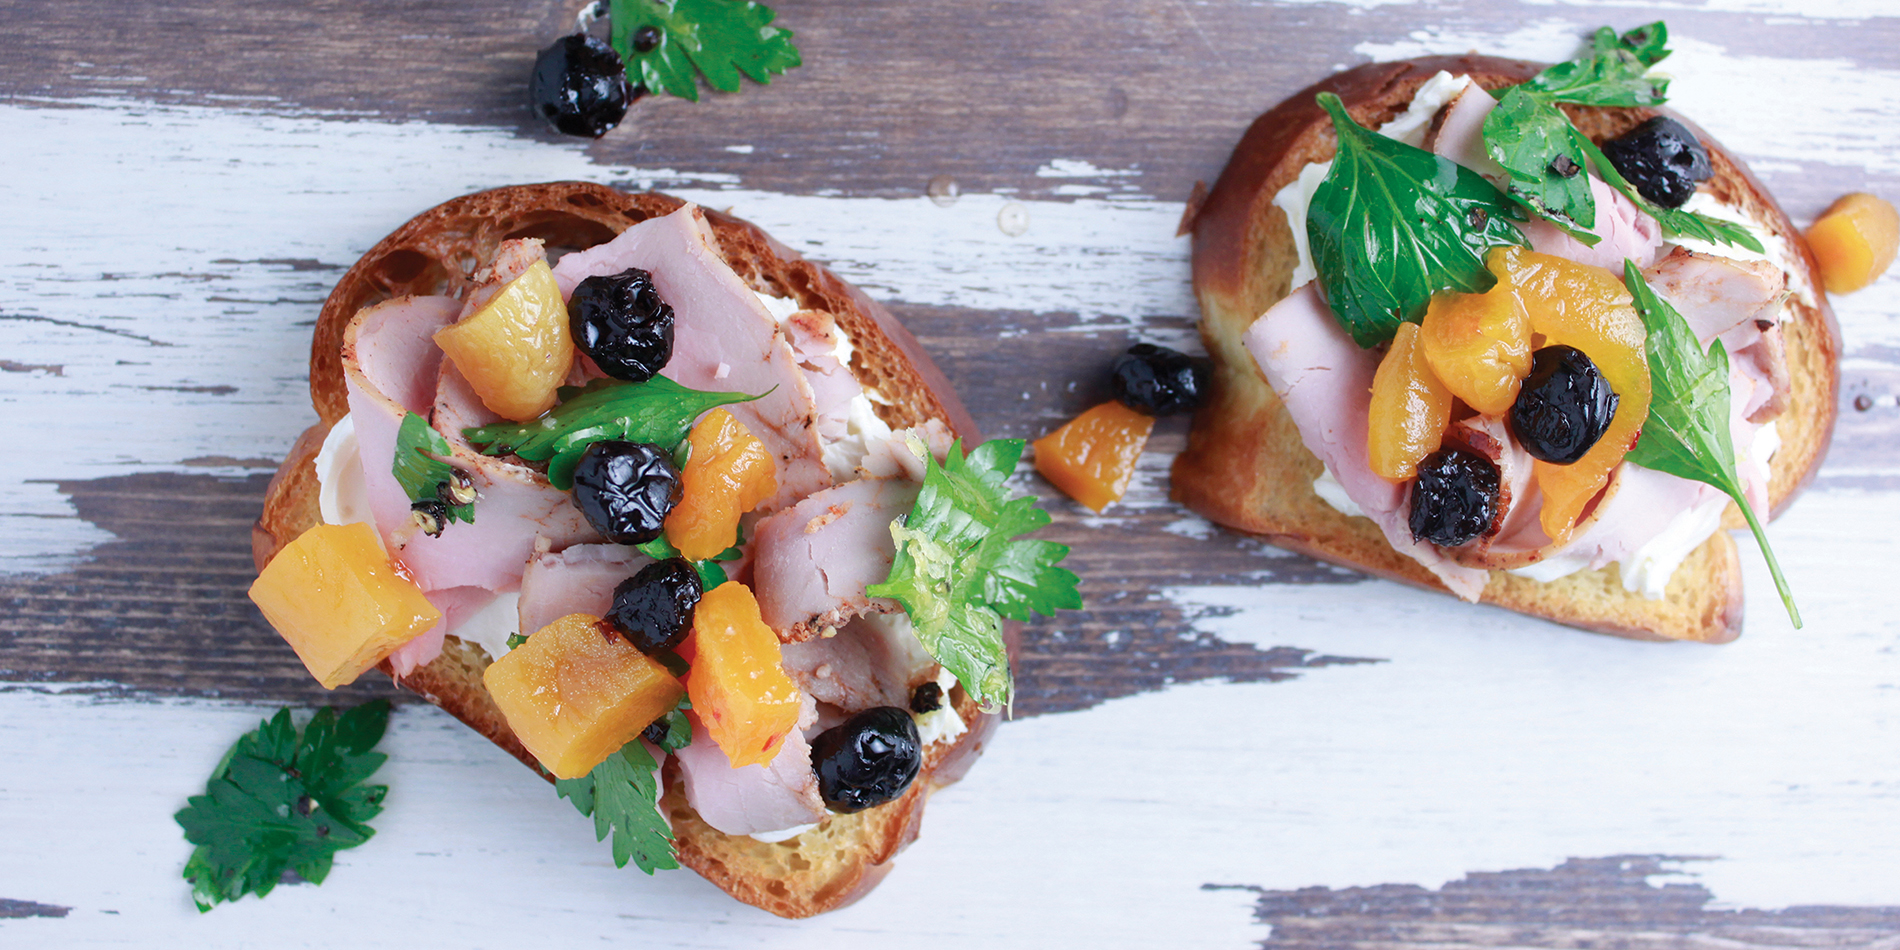 Smoked Pork Loin Toast featuring Haliburton pickled blueberries and spicy pickled apricot